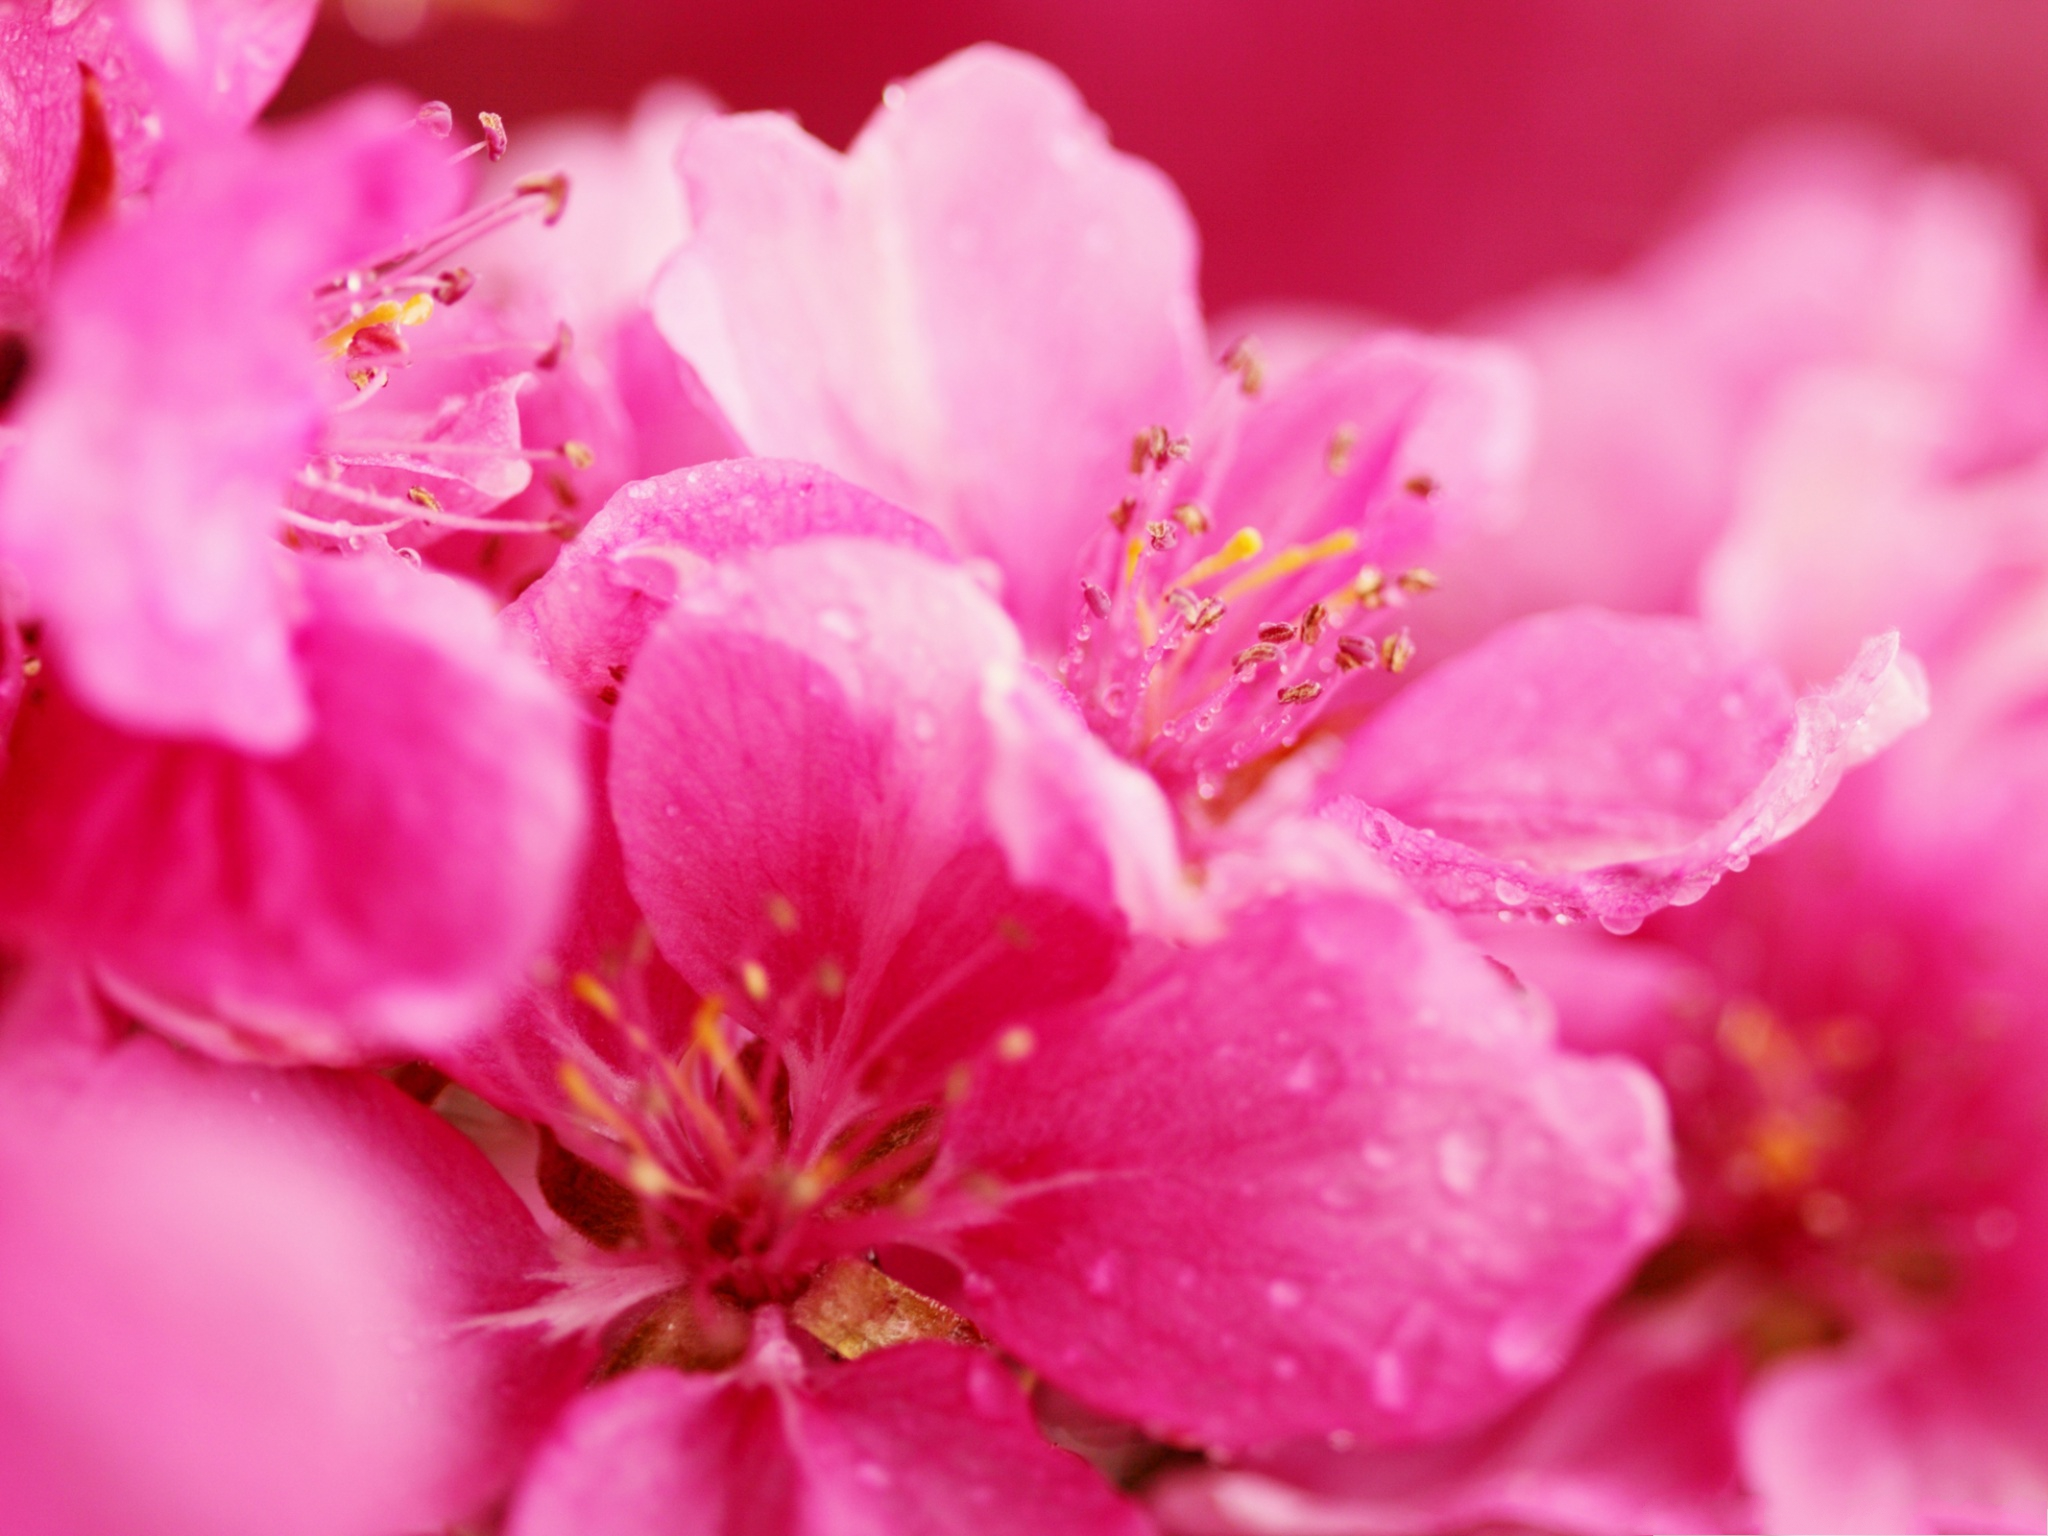 click to free download the wallpaper--Pink Flowers Pic, Blooming Tiny Flower, Rain Drops on the Petal 2048X1536 free wallpaper download